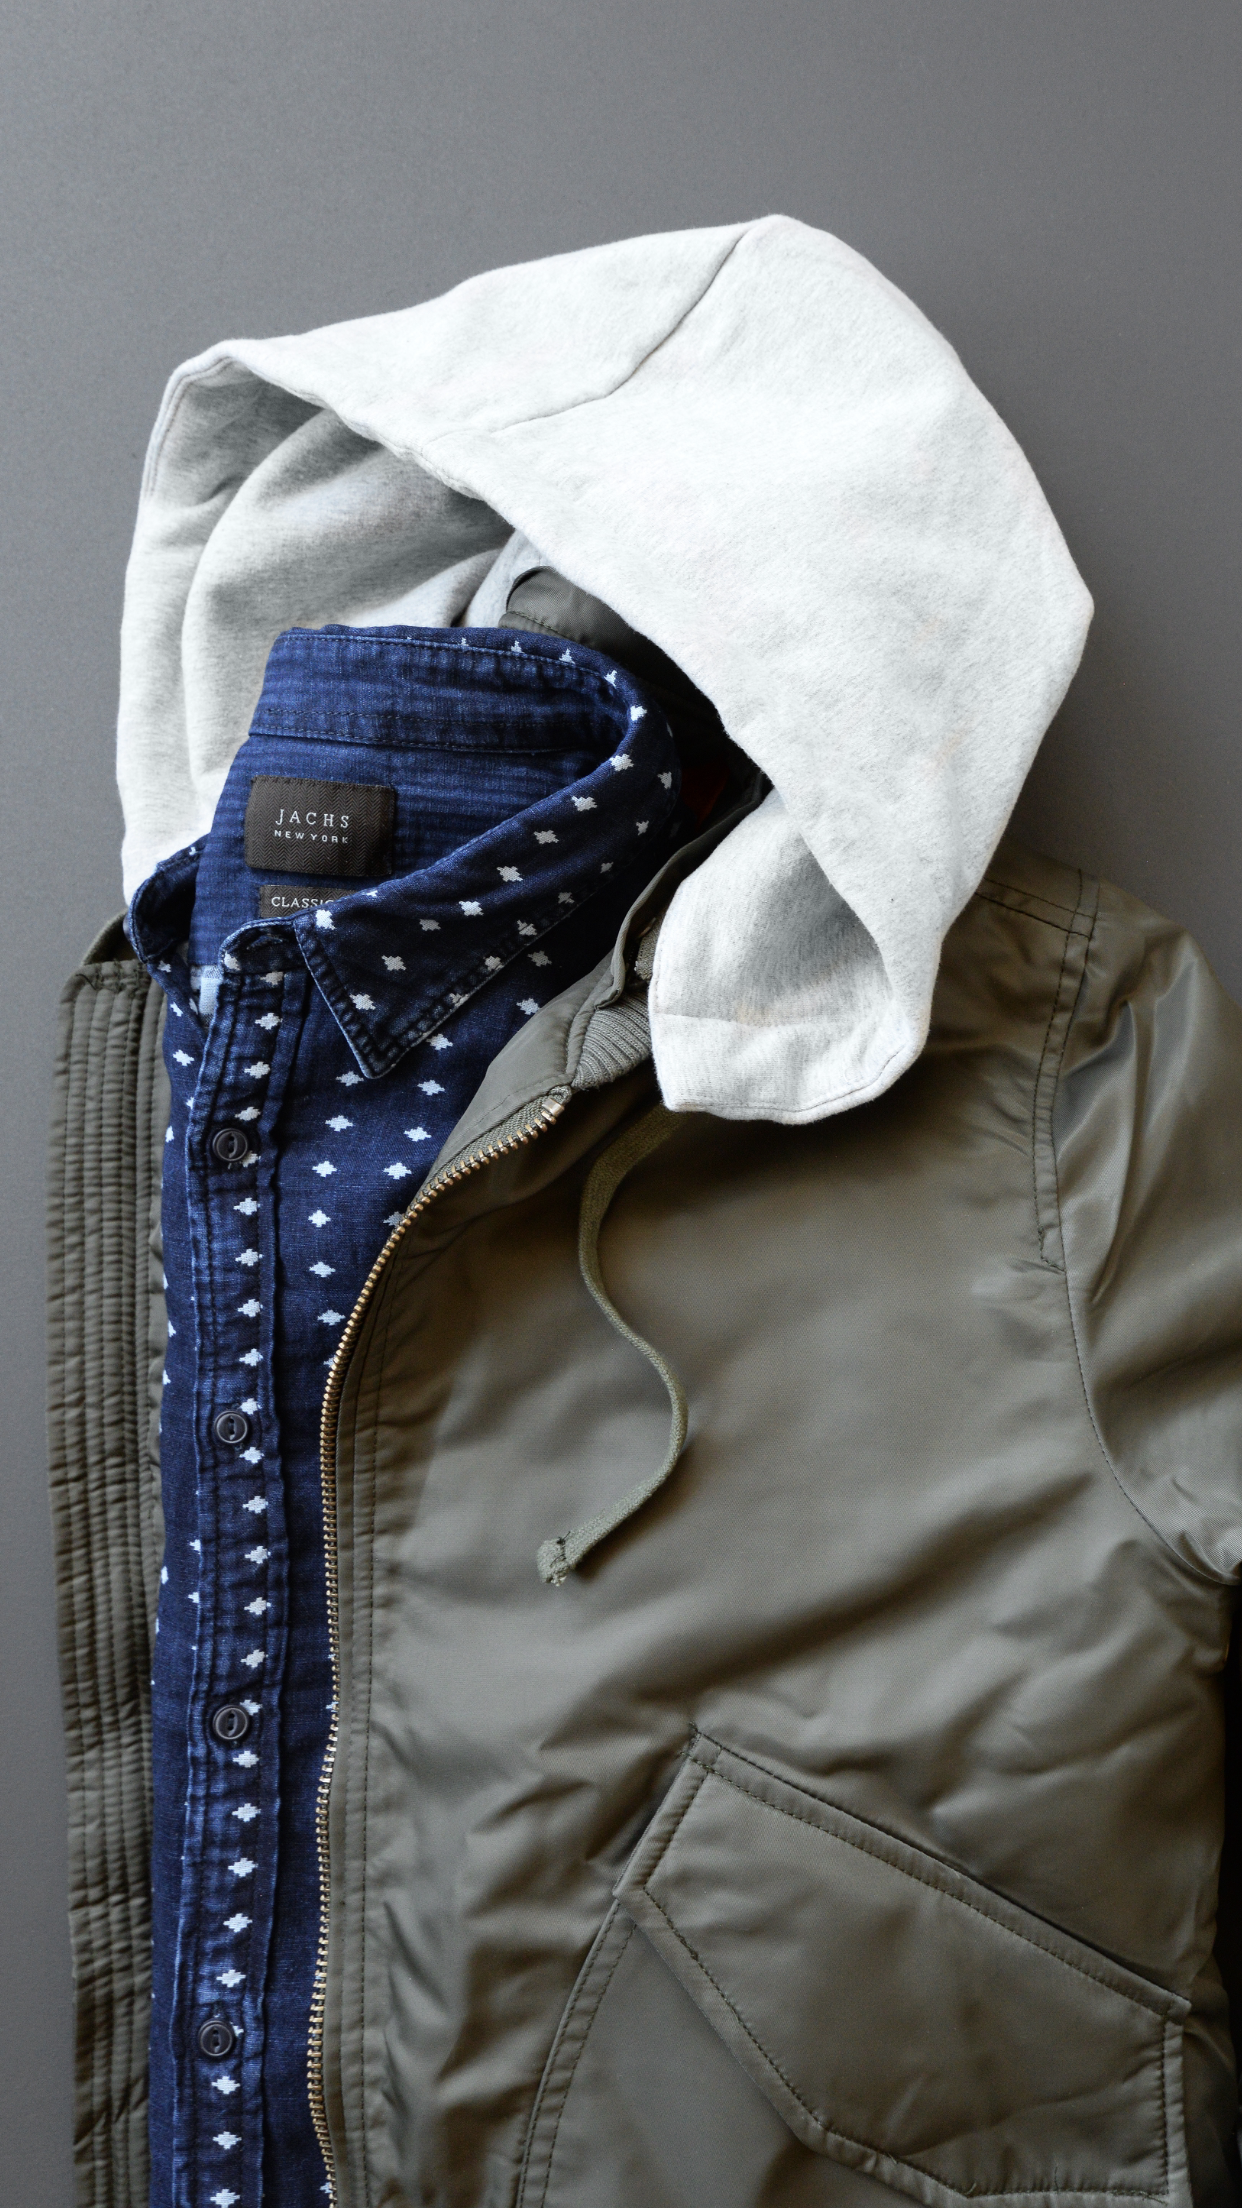 Hoodie Bomber Jacket And Pattern Shirt From Jachsny Bomberjacket Jacket Patternshirt Menswear [ 2208 x 1242 Pixel ]